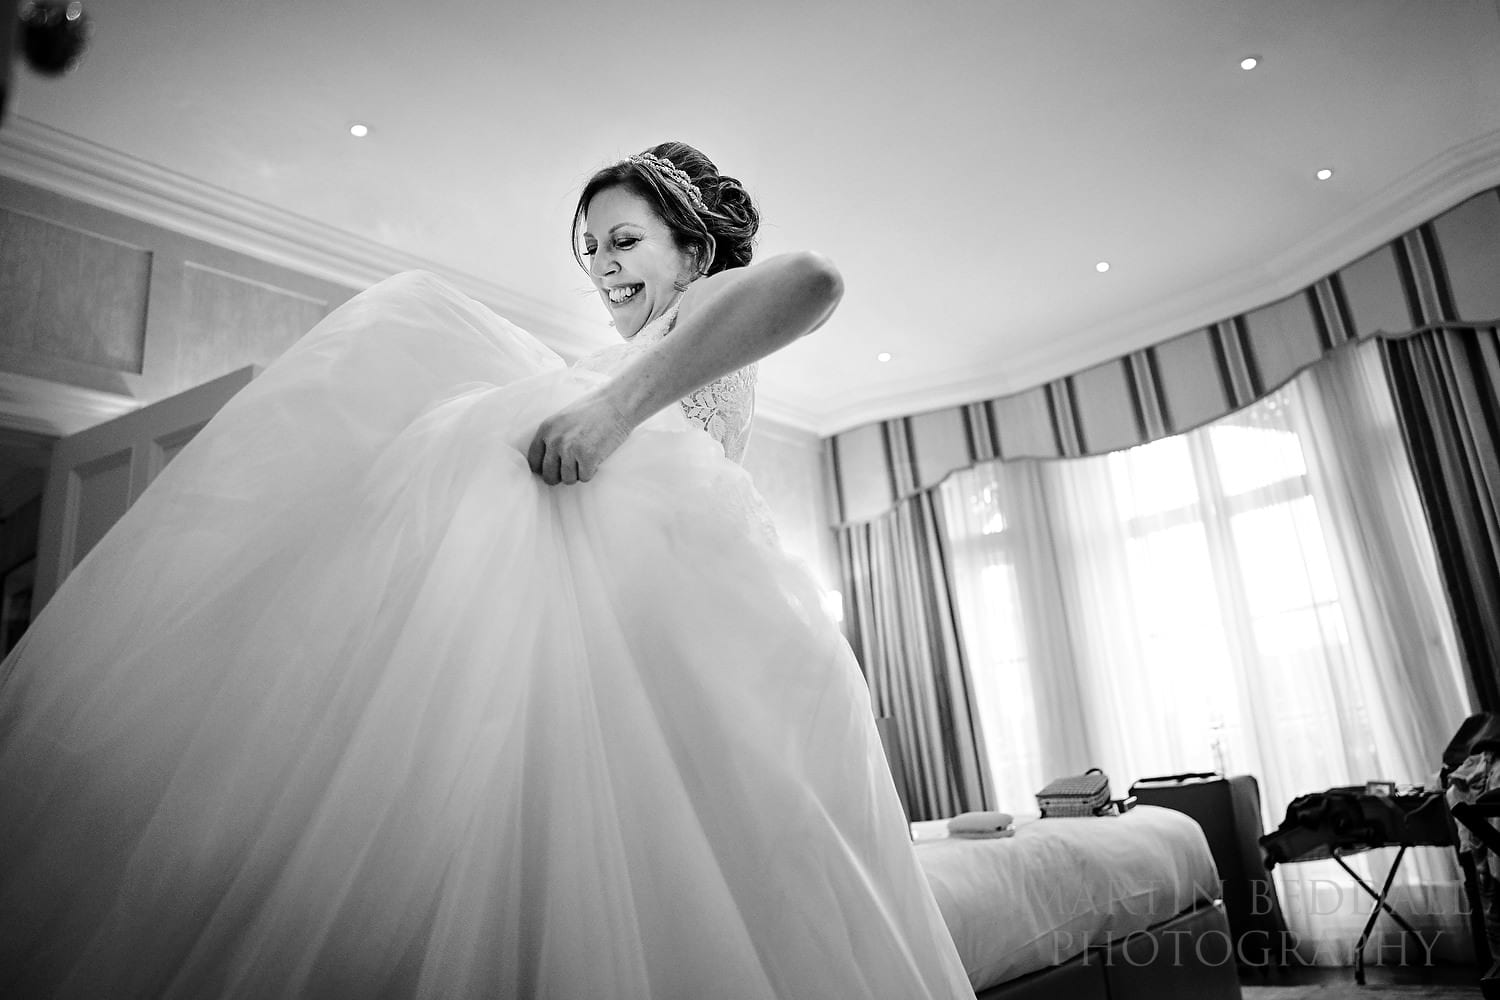 Brider puts on her wedding dress in a room at Claridges